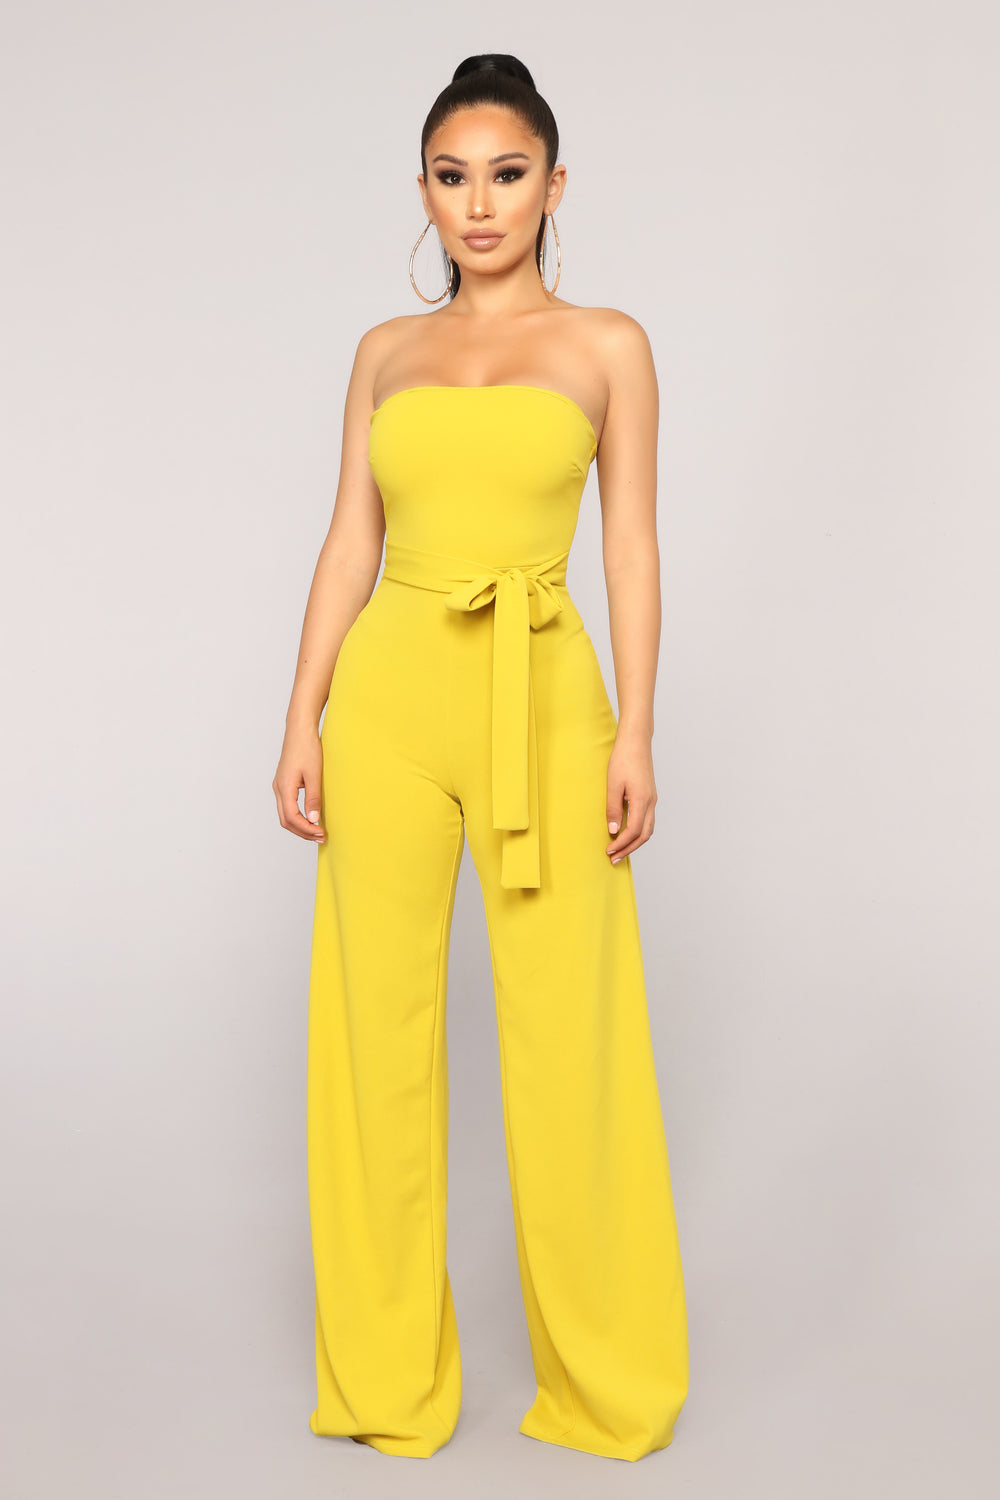 Not In The Mood Tube Jumpsuit - Mustard